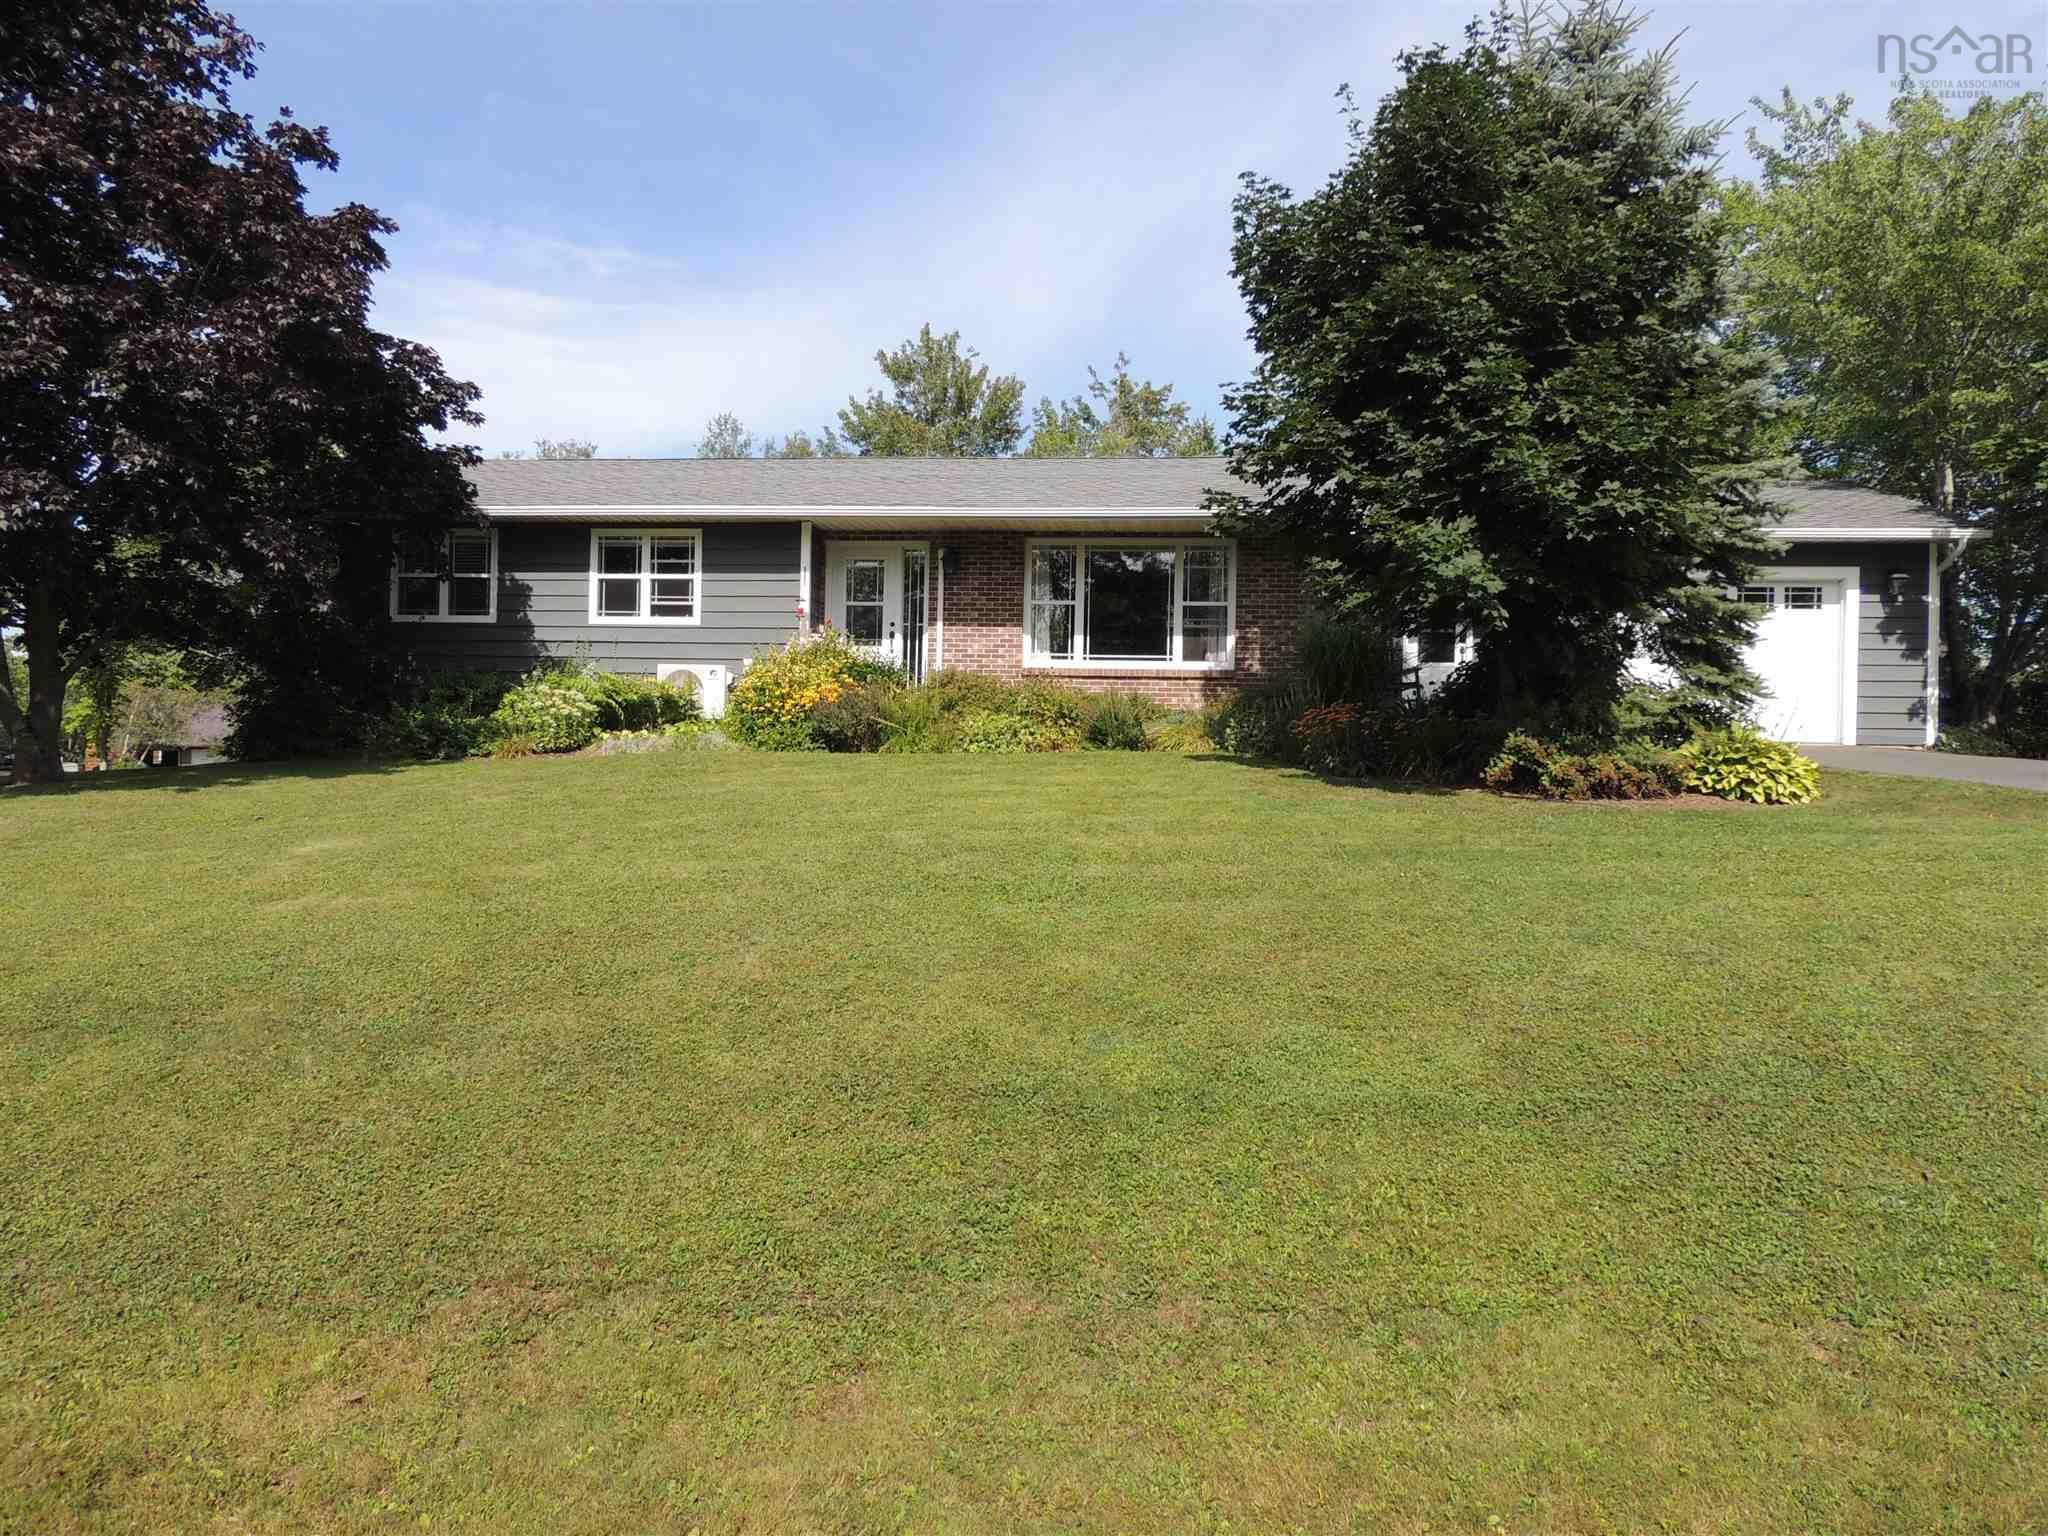 Main Photo: 1 Angie Walk in Milford: 105-East Hants/Colchester West Residential for sale (Halifax-Dartmouth)  : MLS®# 202122327